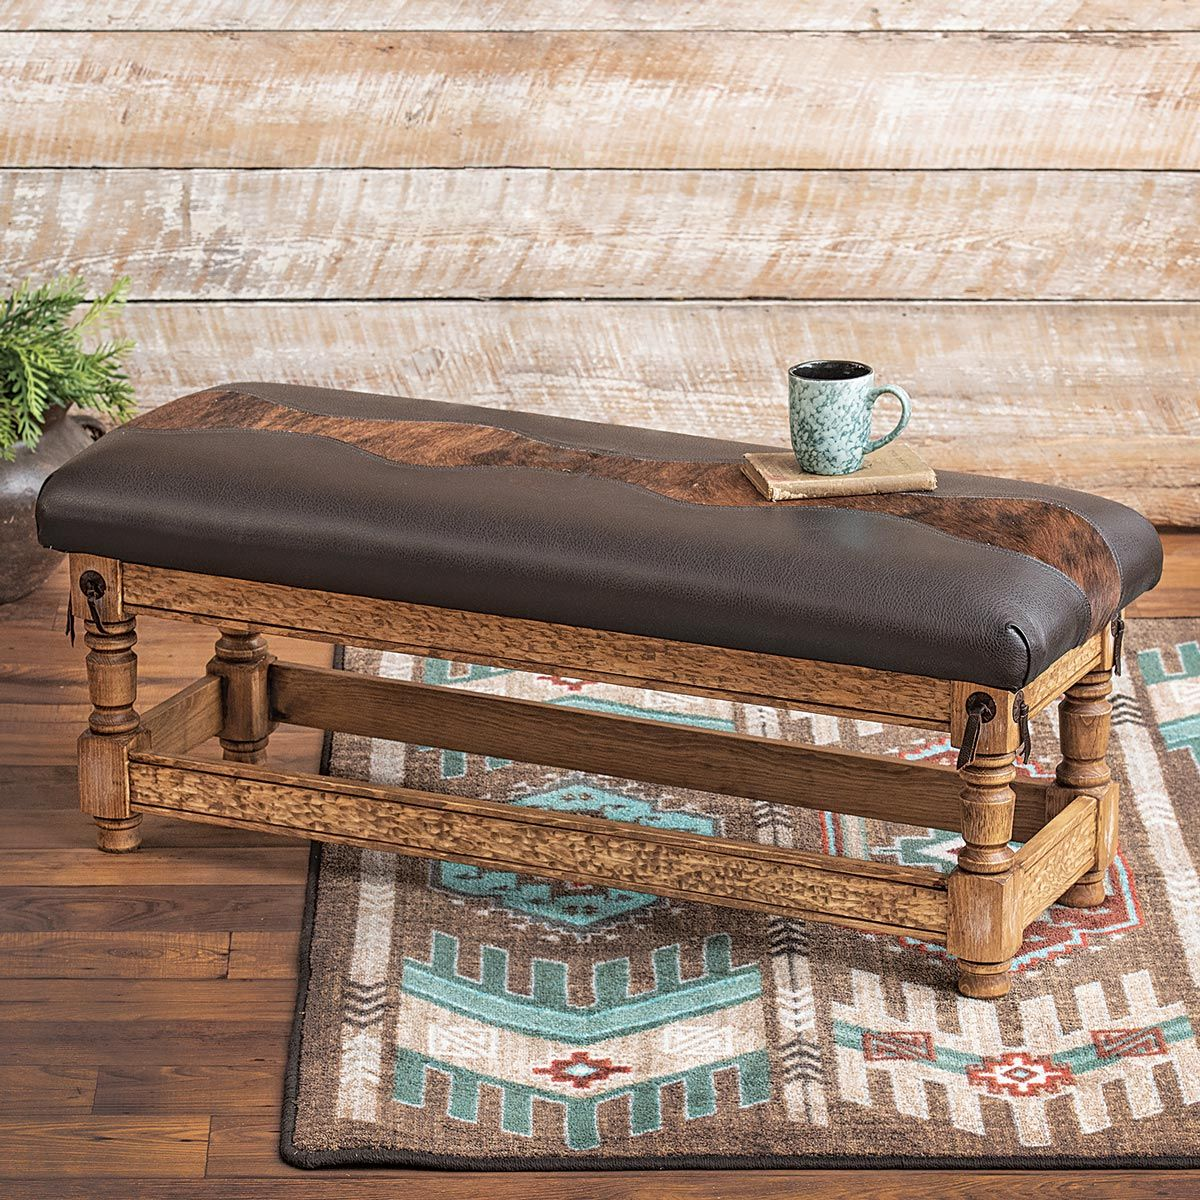 Chaps Bench - Small